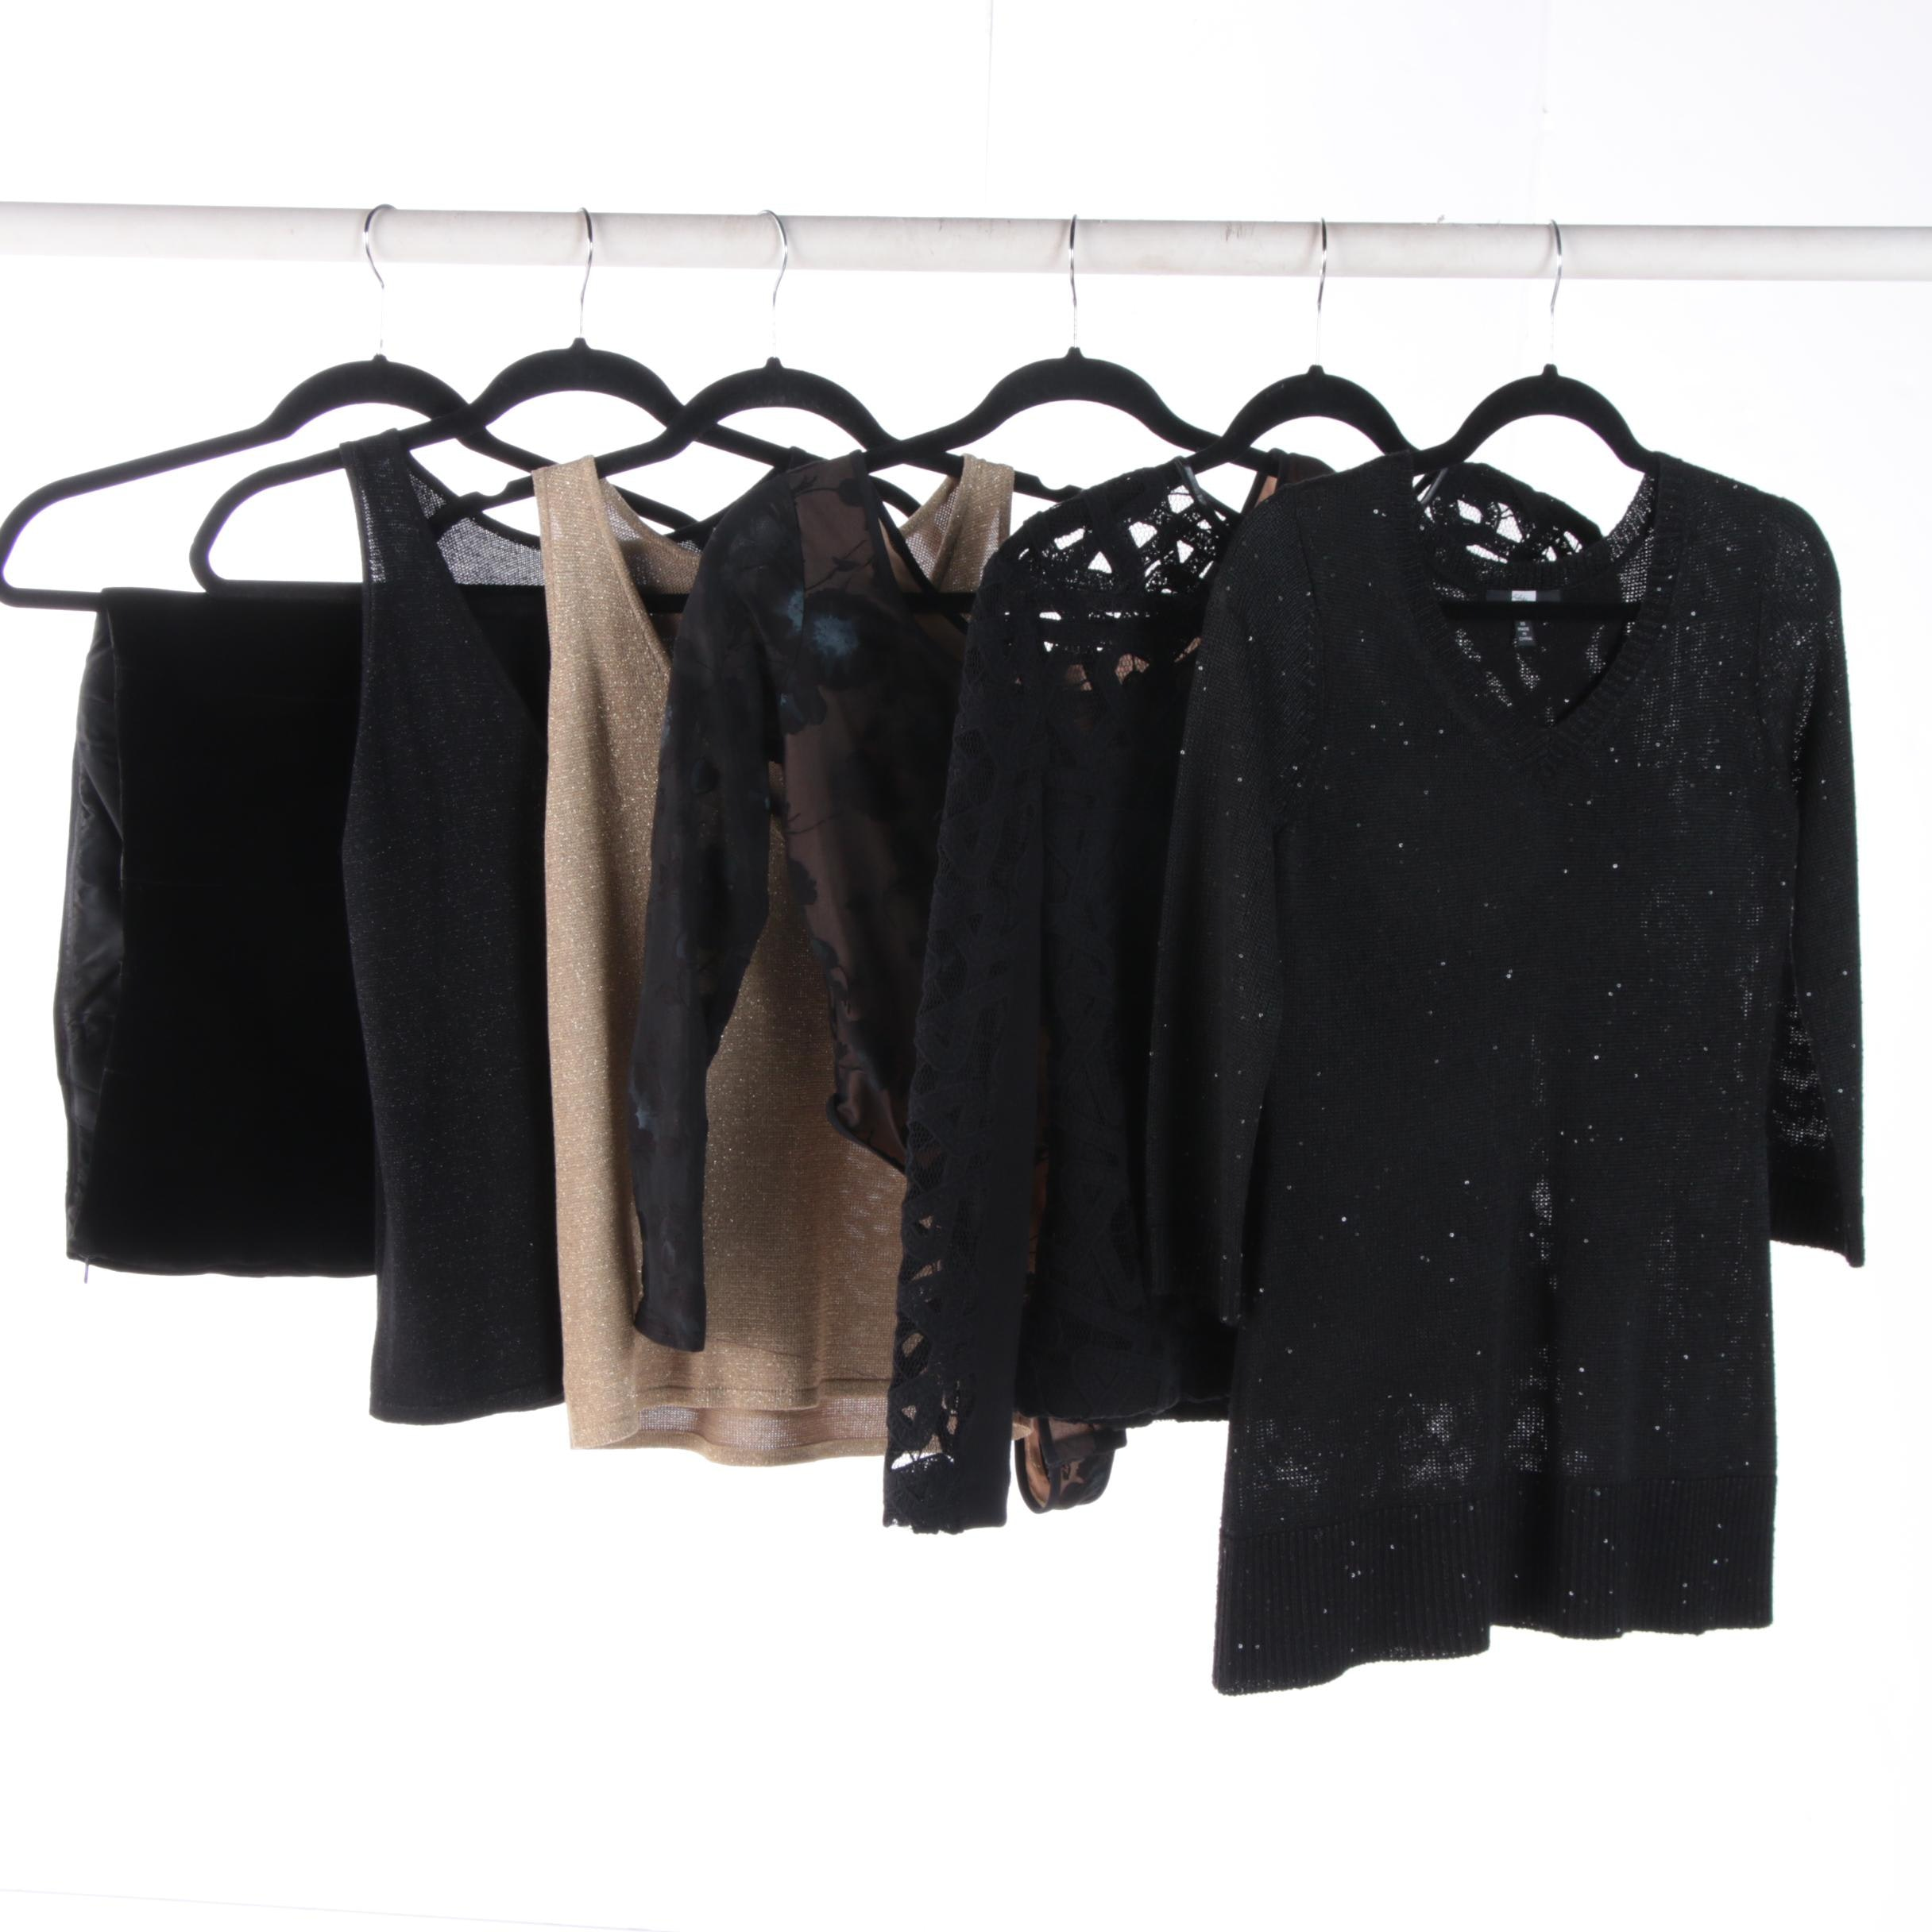 Women's Knit Tops including Yigal Azrouël and Saks Fifth Avenue